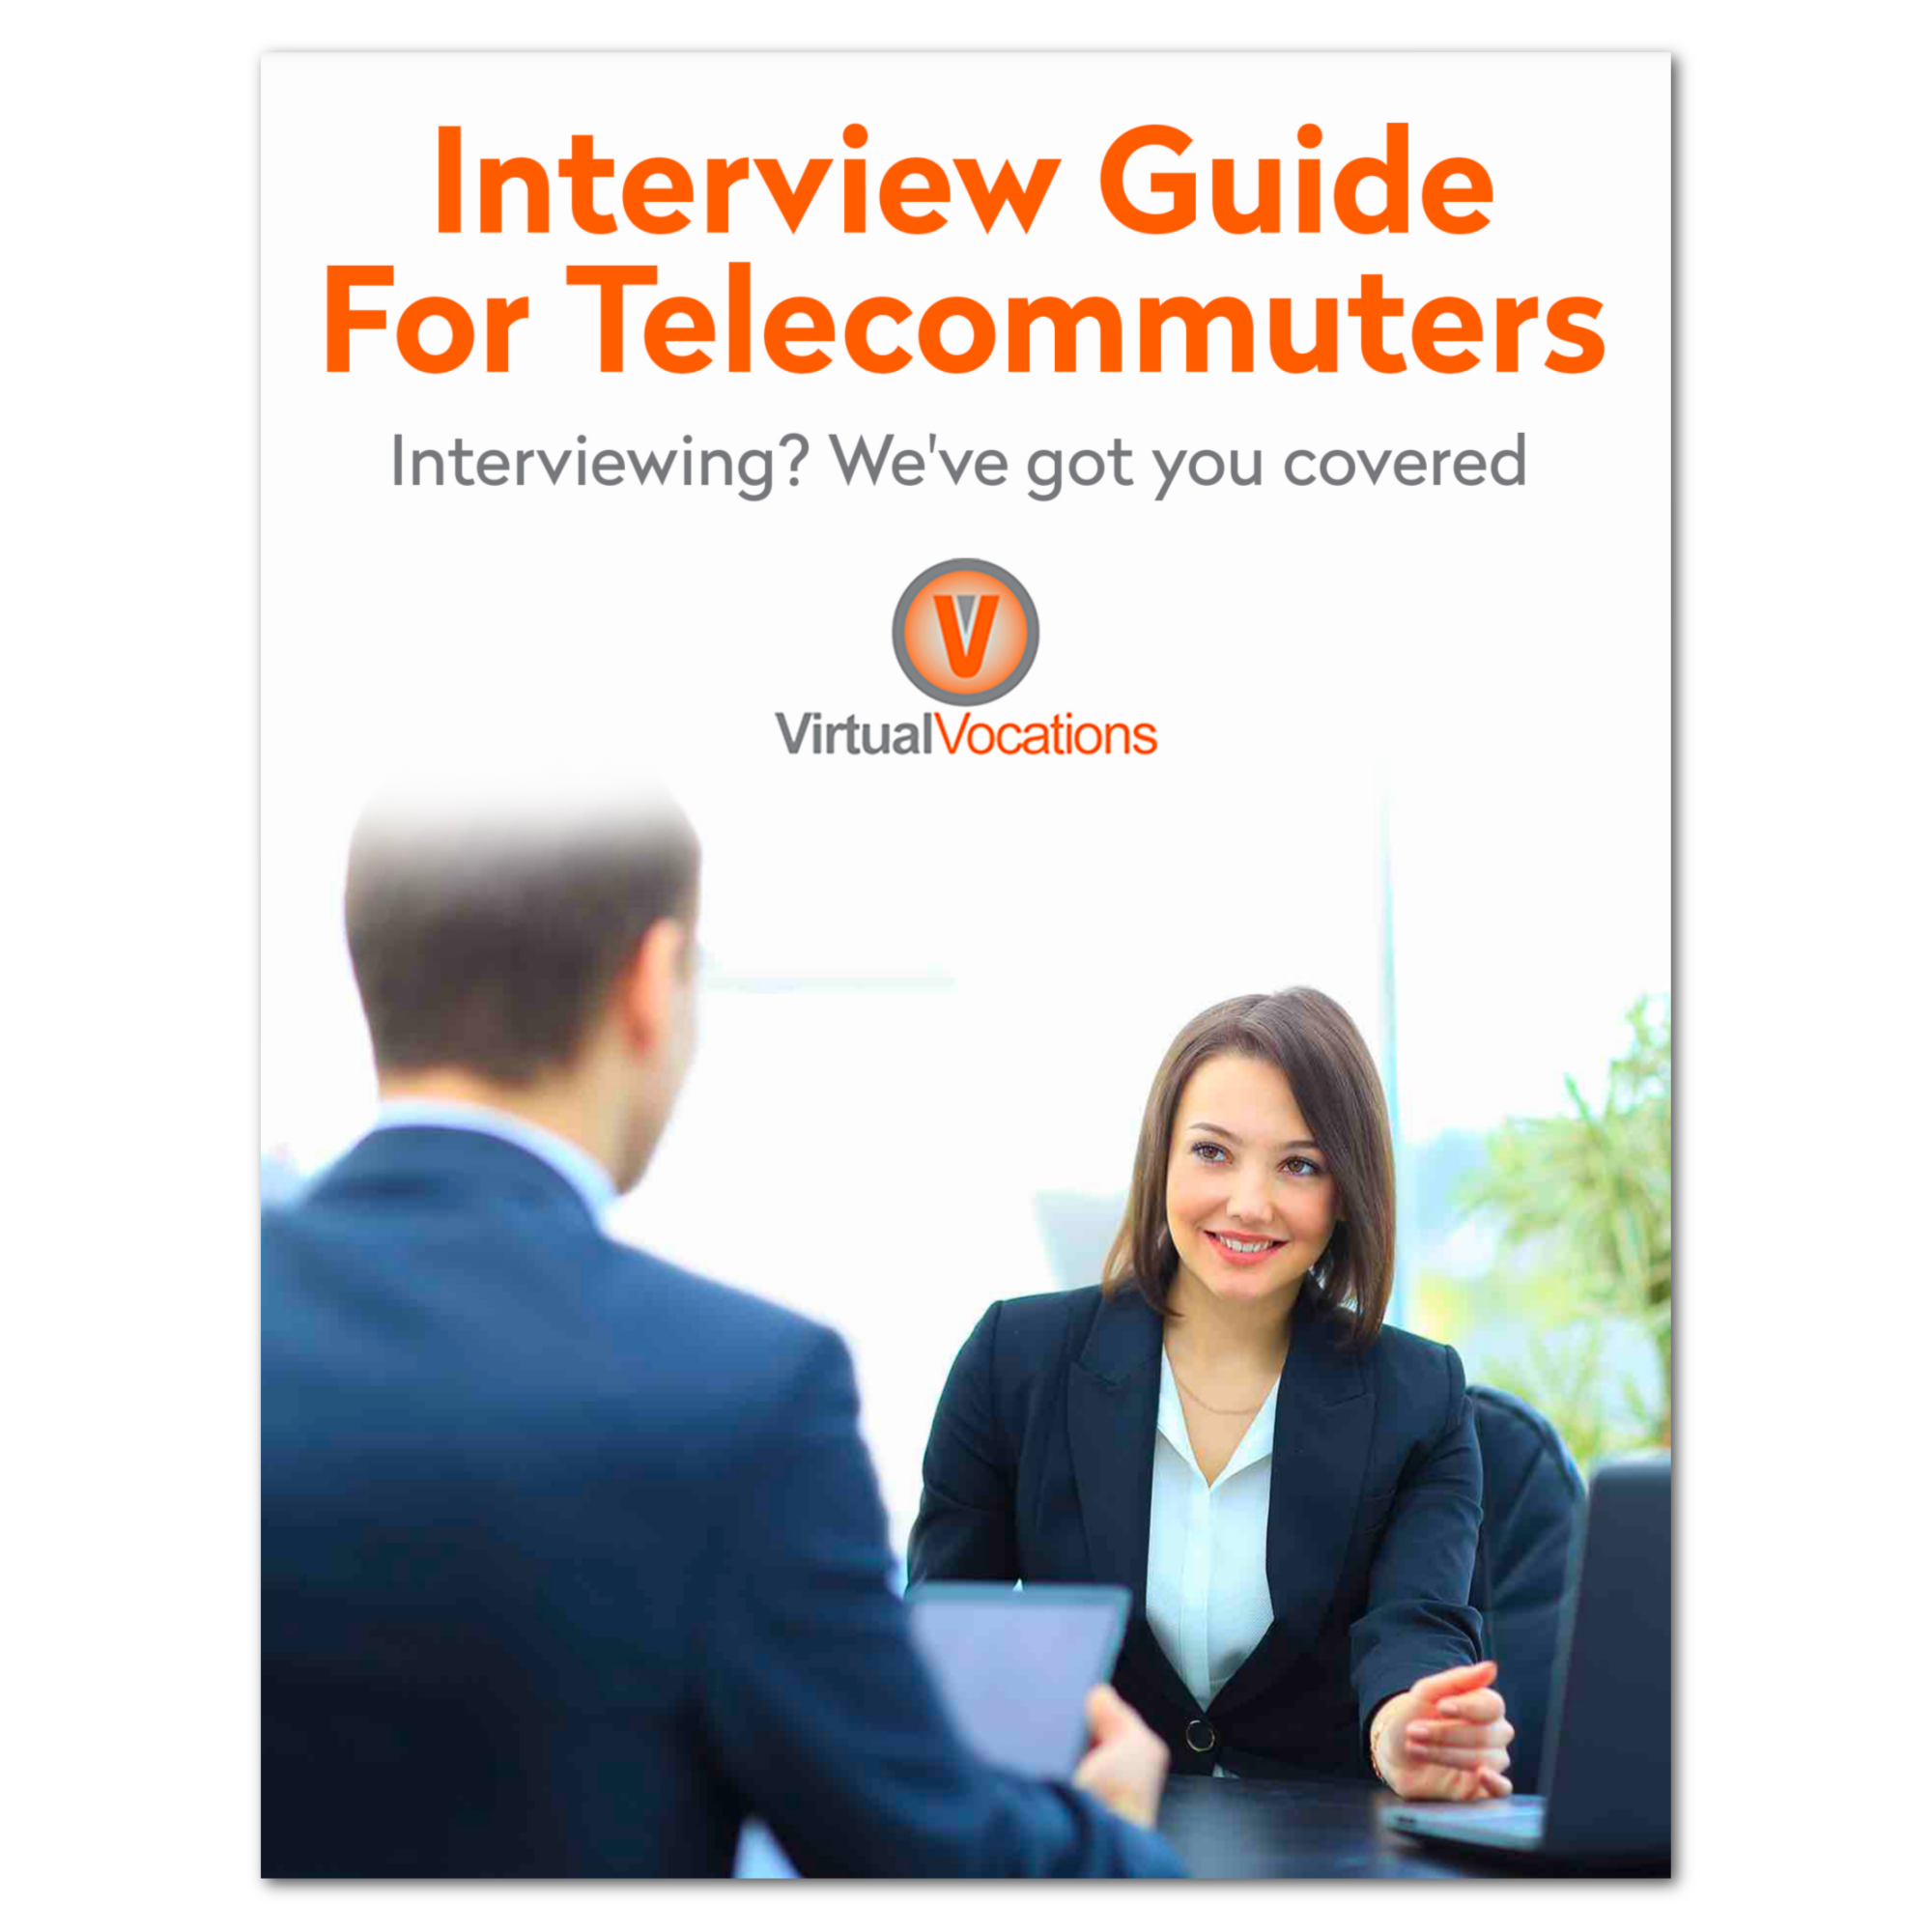 Interview Guide for Telecommuters